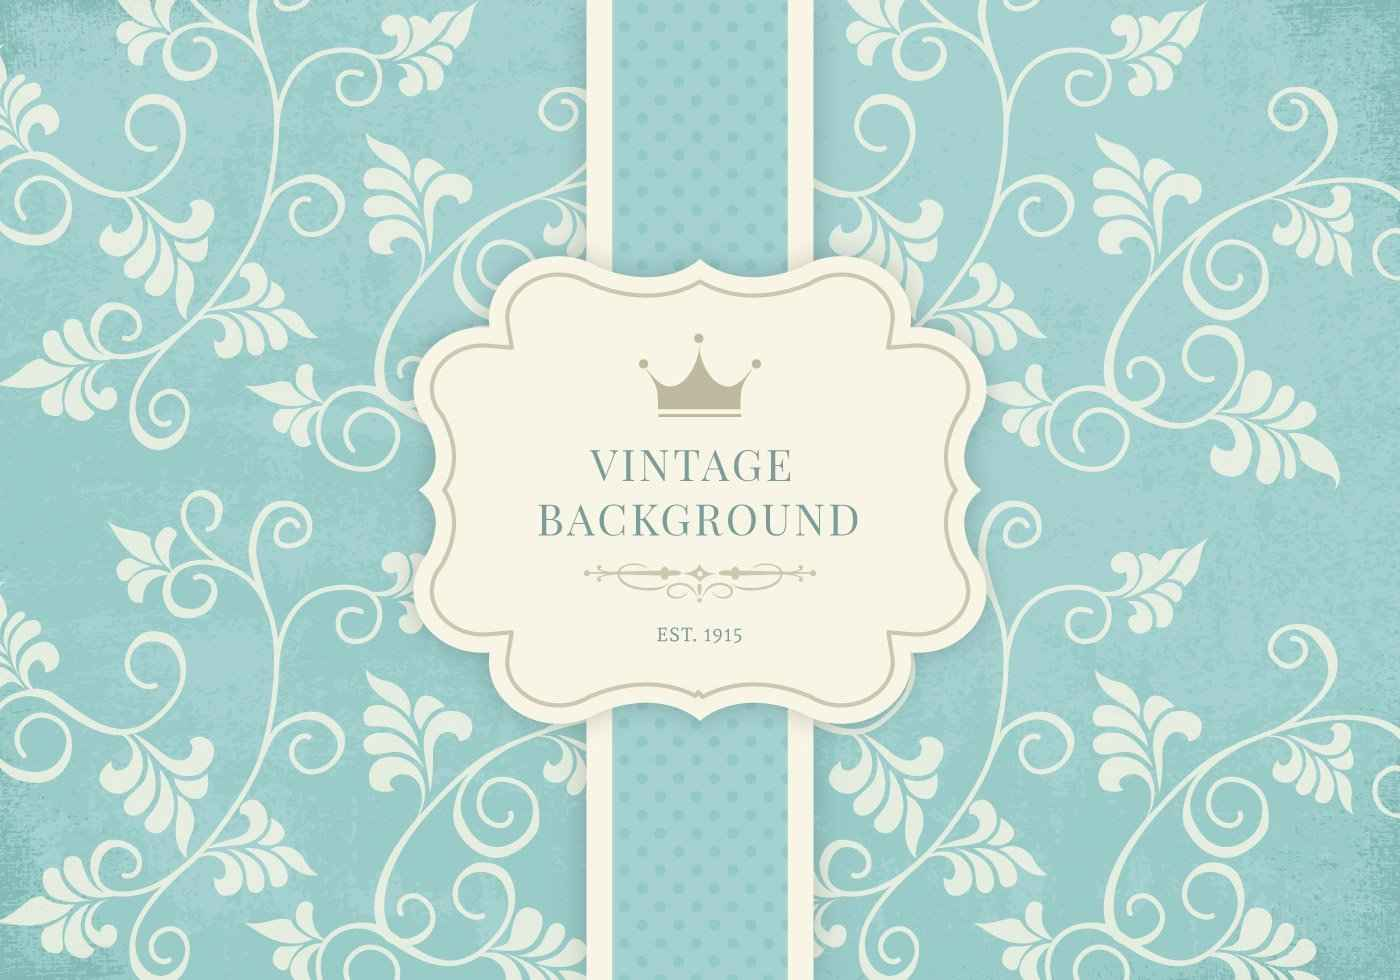 Vintage Floral Background Vector Free Graphic Design Elements